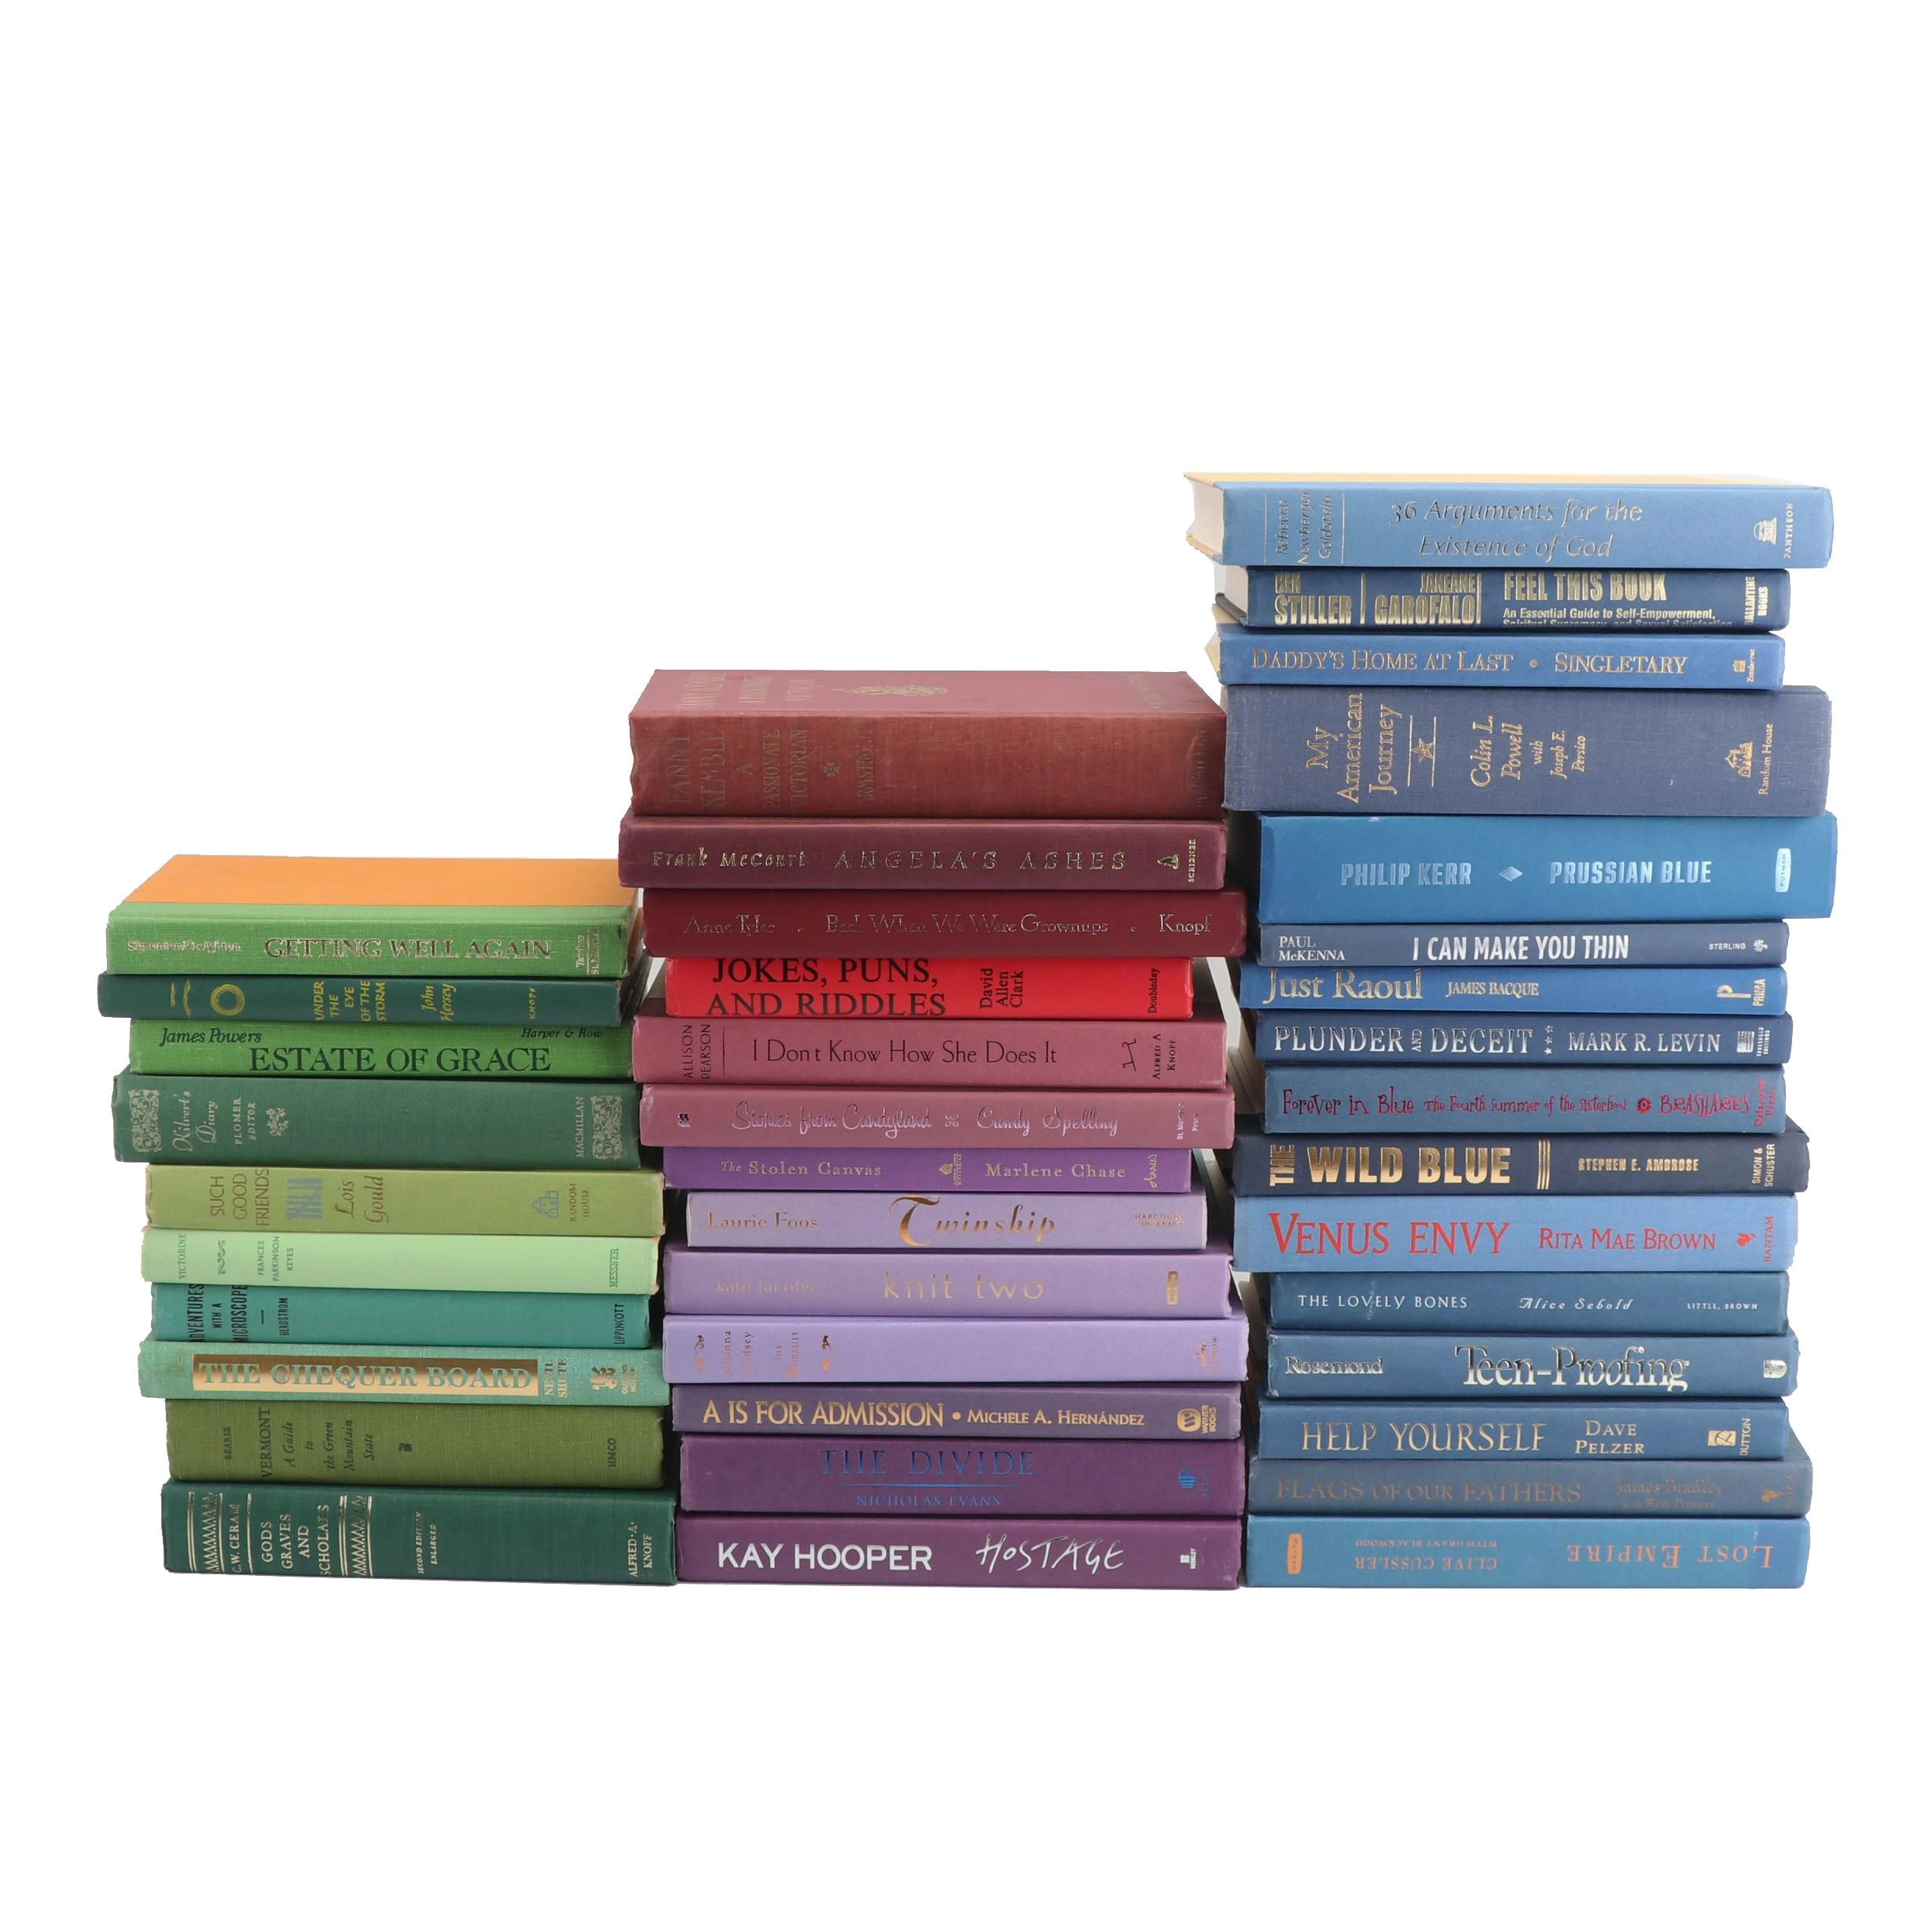 Decorative Stacks of Green, Red, Purple, and Blue Hardcover Books